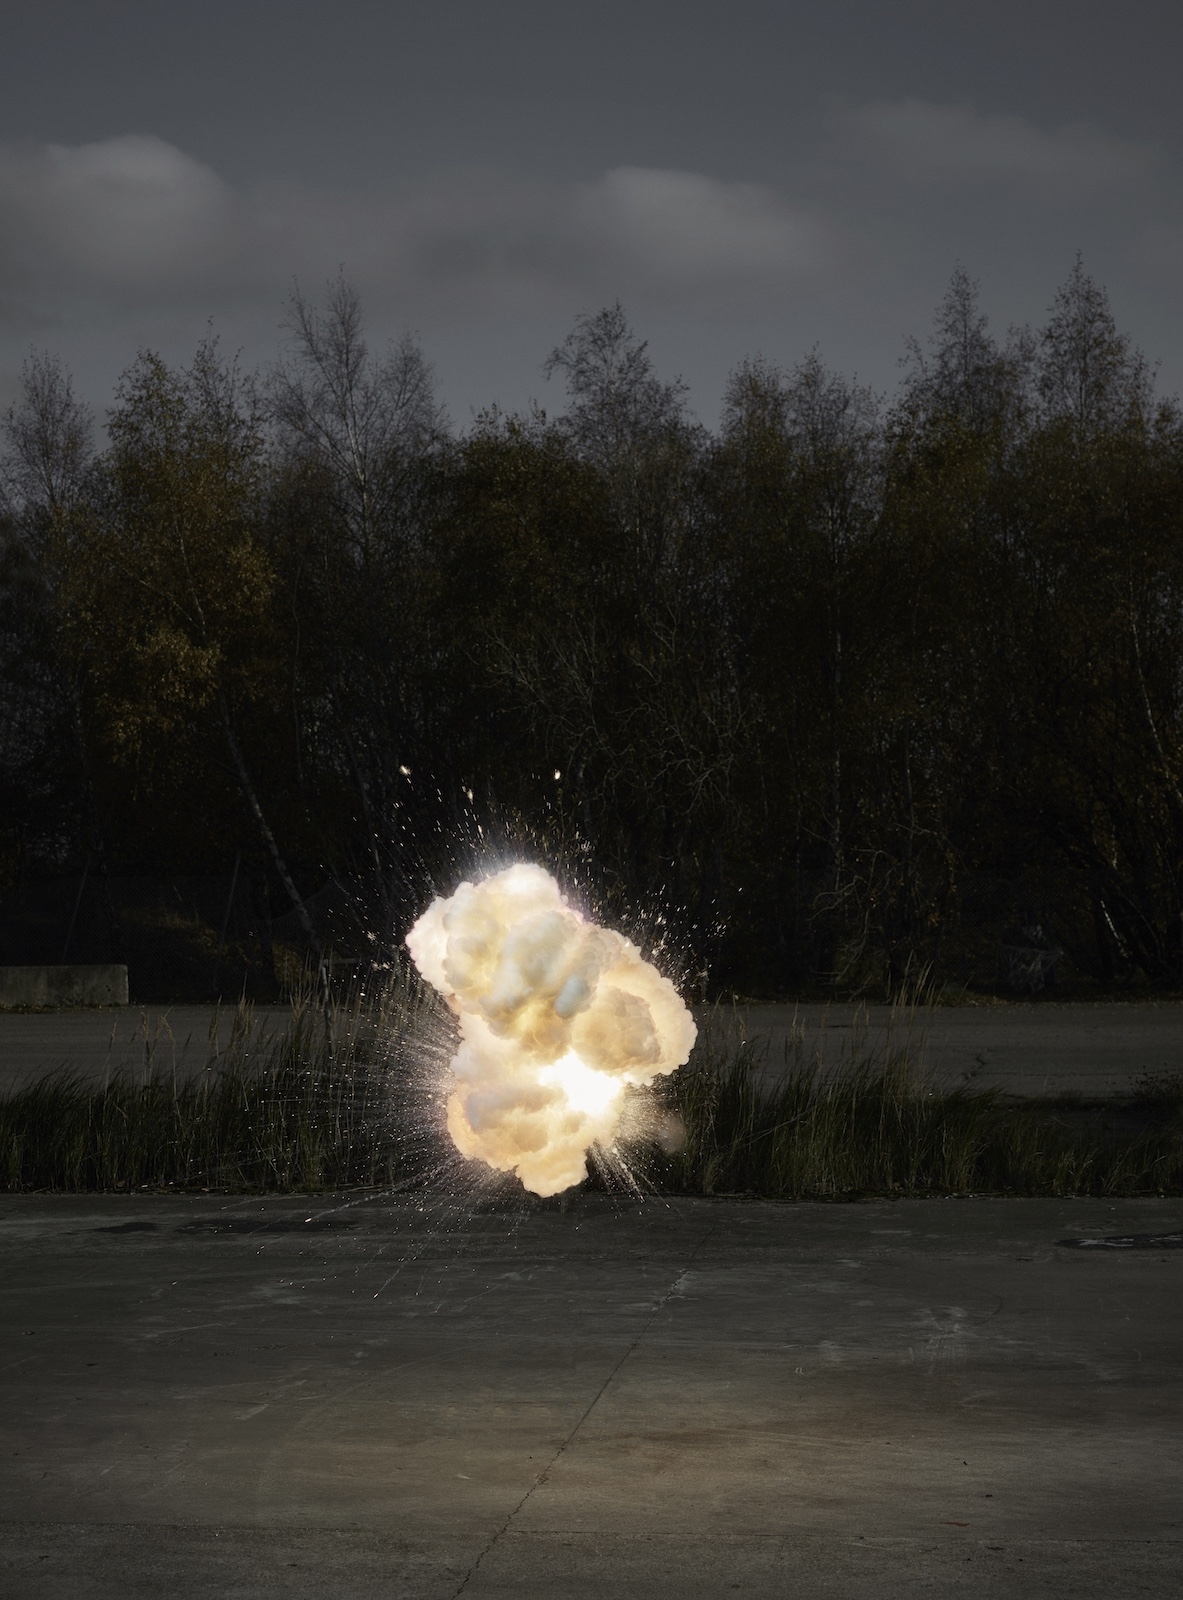 art_kenhermann_explosion2-0_04